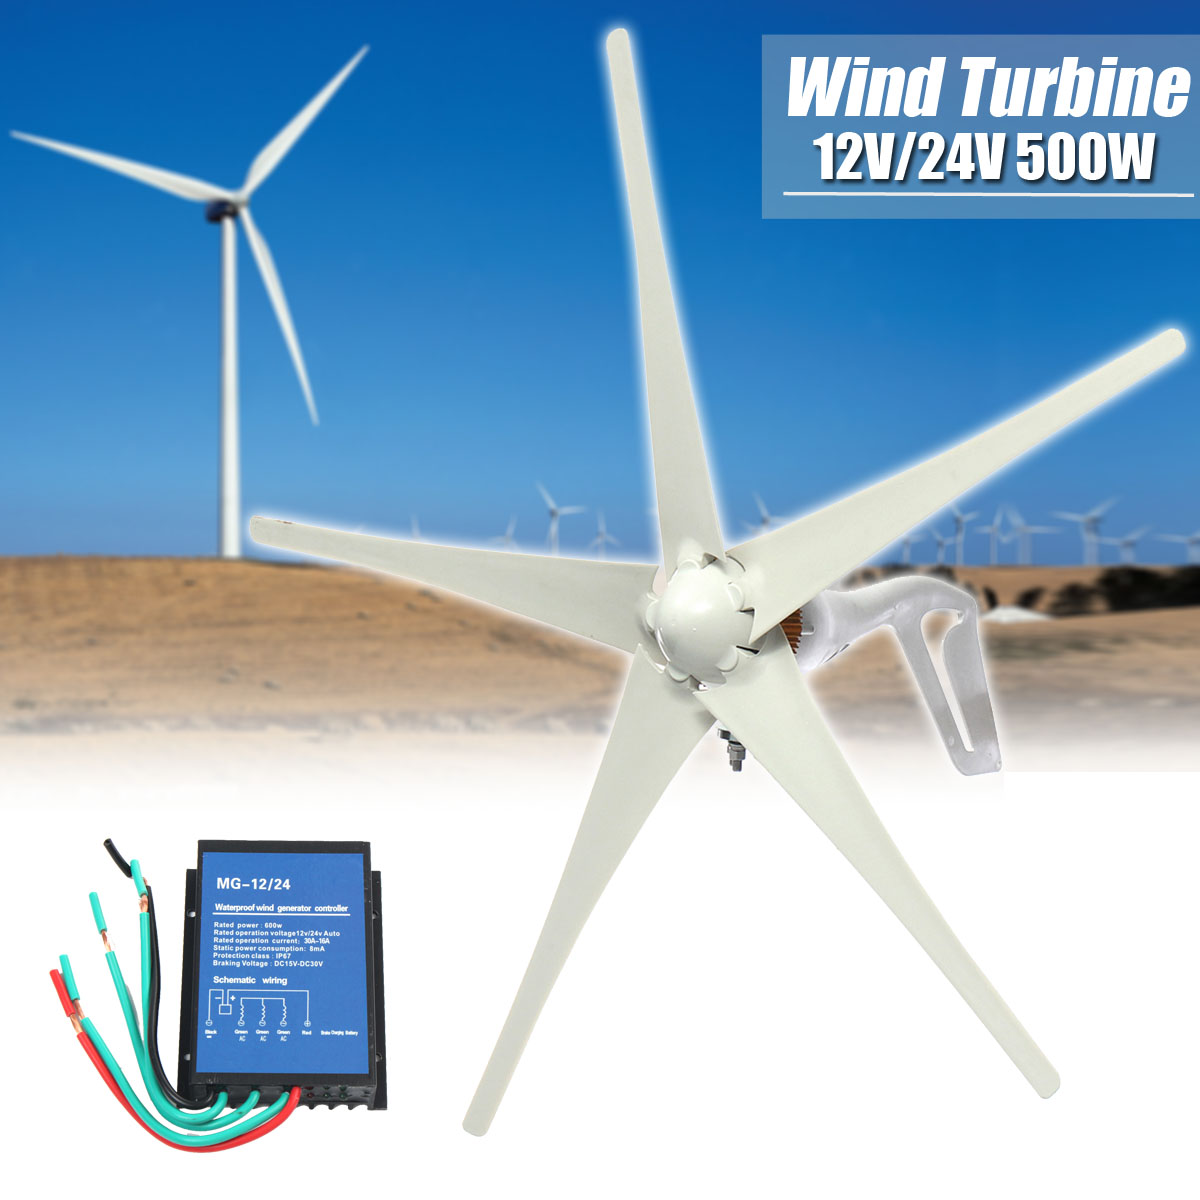 500W 12V Five Wind Blades  Miniature Horizontal Wind Turbines Wind Generator With Controller Fit for Residential Home500W 12V Five Wind Blades  Miniature Horizontal Wind Turbines Wind Generator With Controller Fit for Residential Home